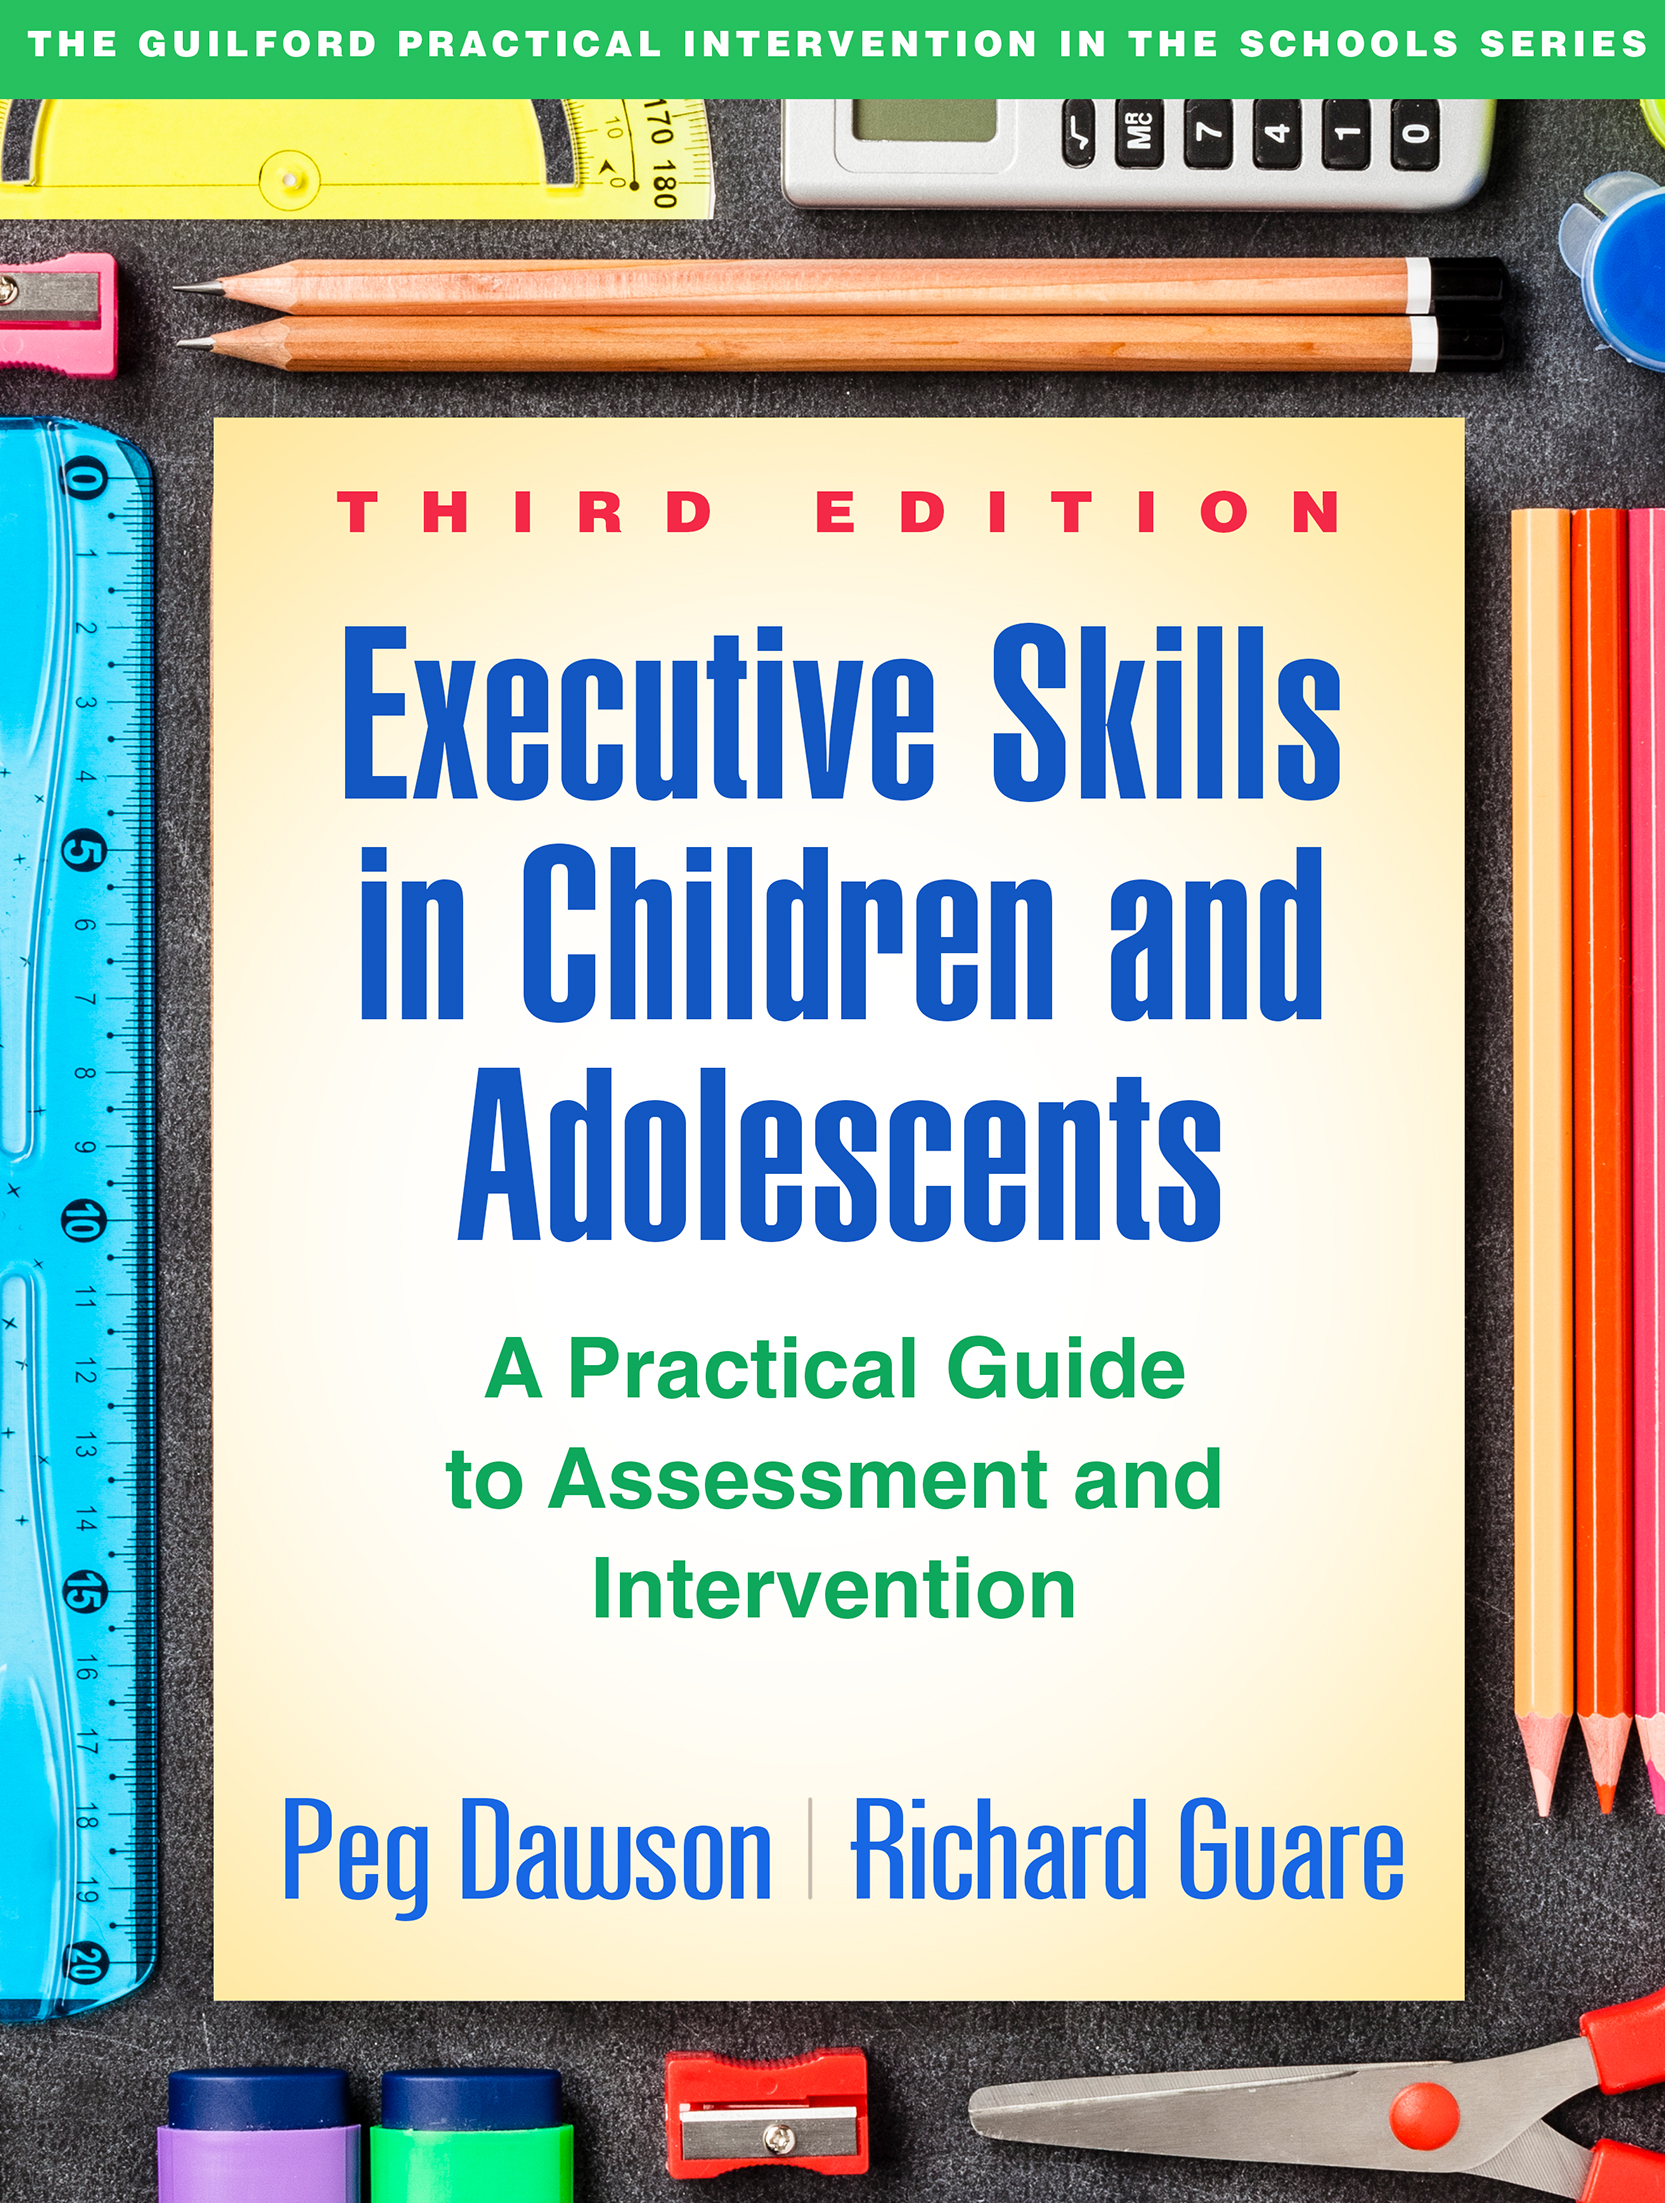 Executive Skills in Children and Adolescents, Third Edition: A Practical Guide to Assessment and Intervention book cover